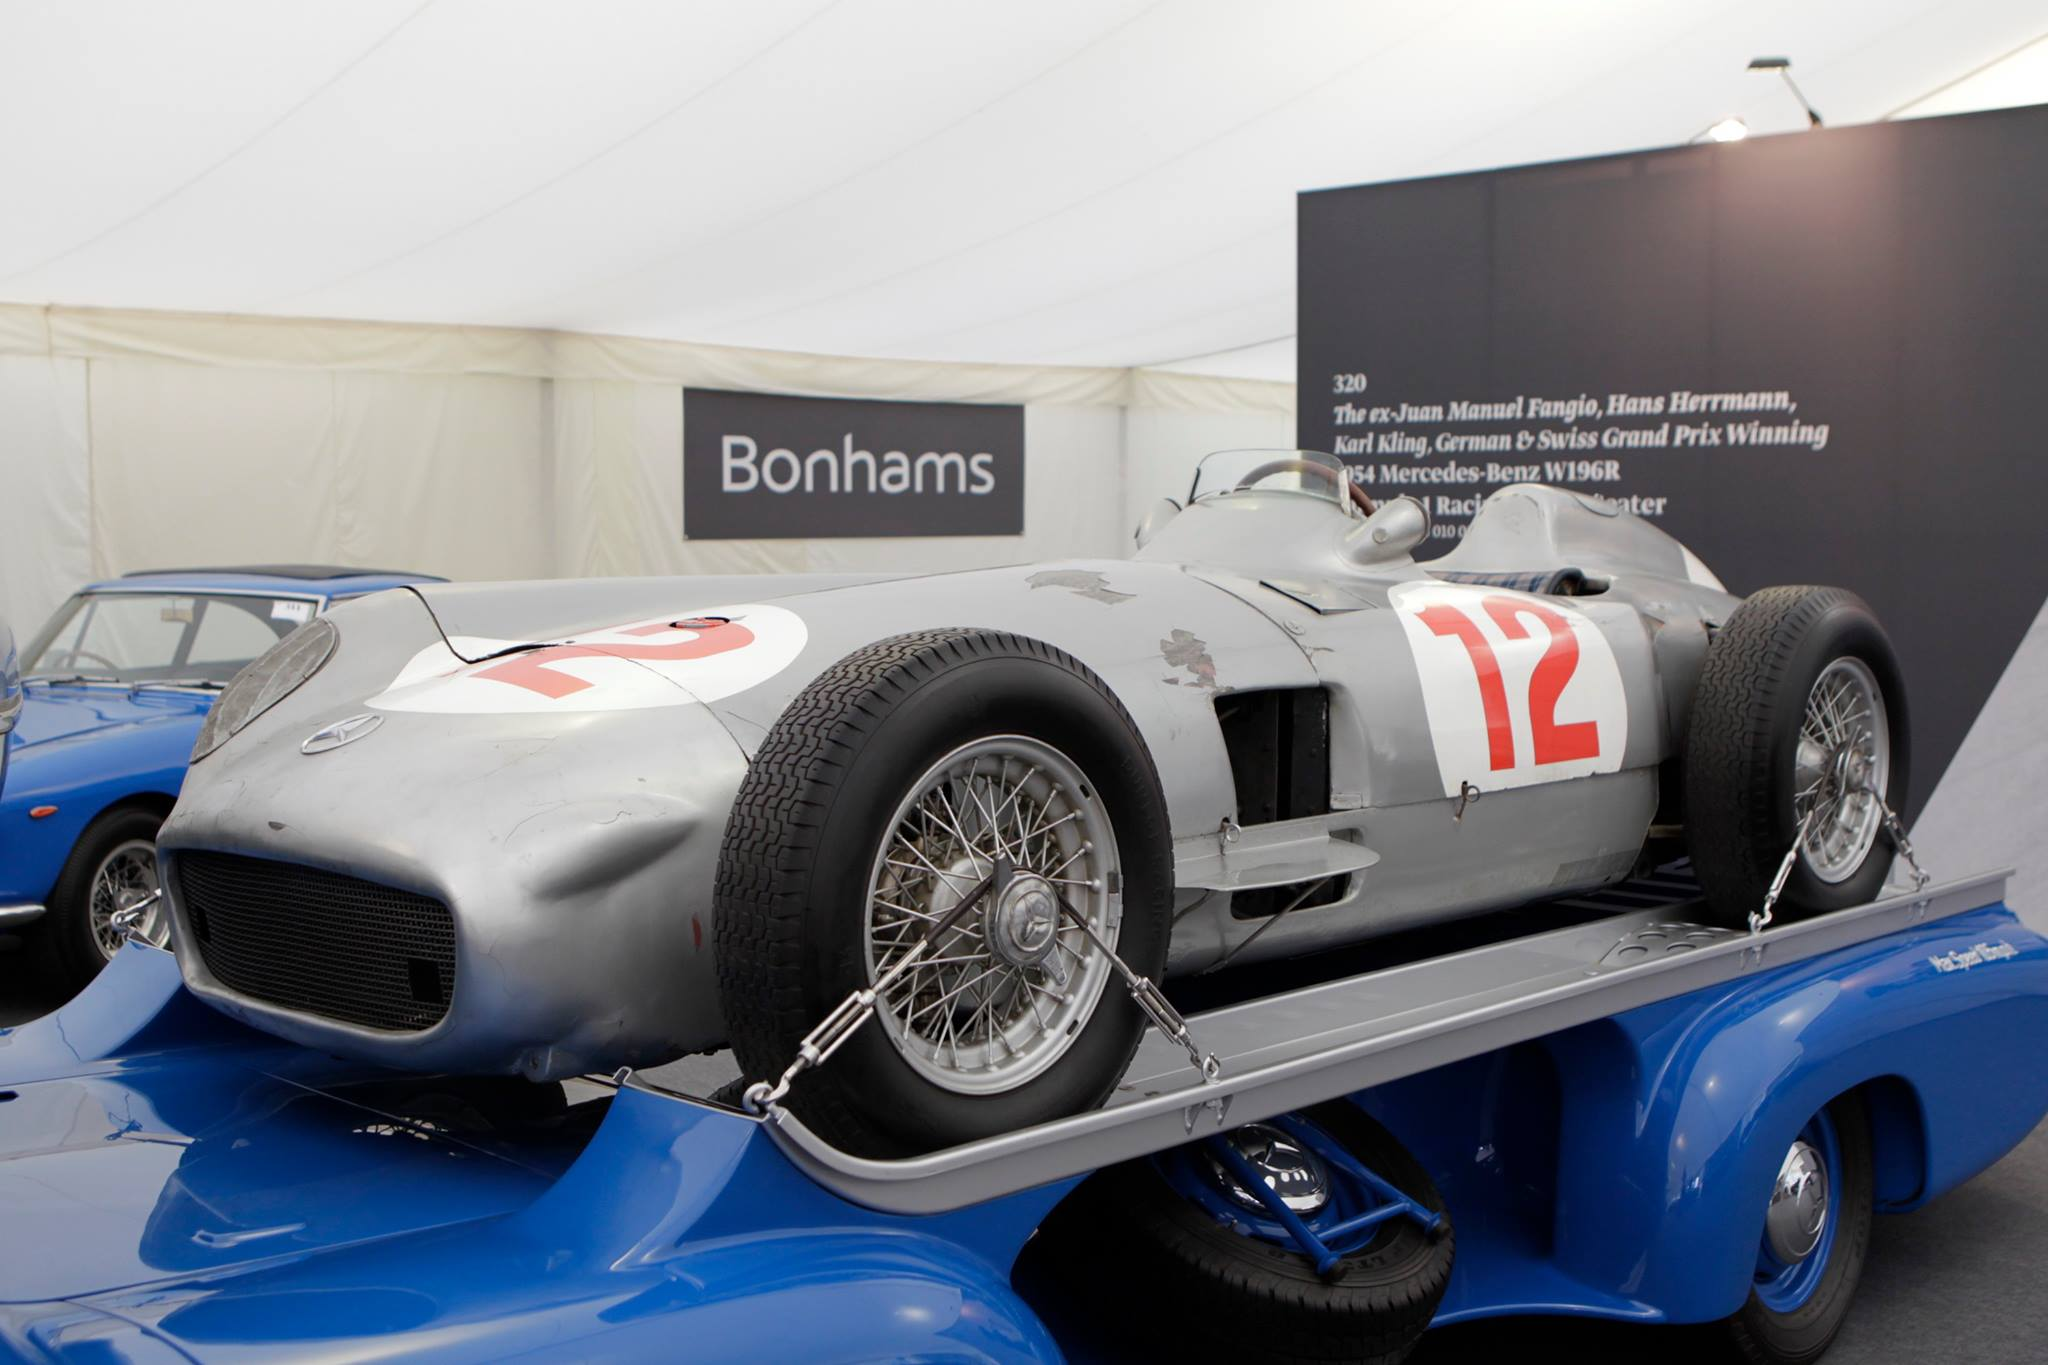 Fangio 39 s mercedes benz 1954 f1 car sold for 29 7 million for Mercedes benz formula 1